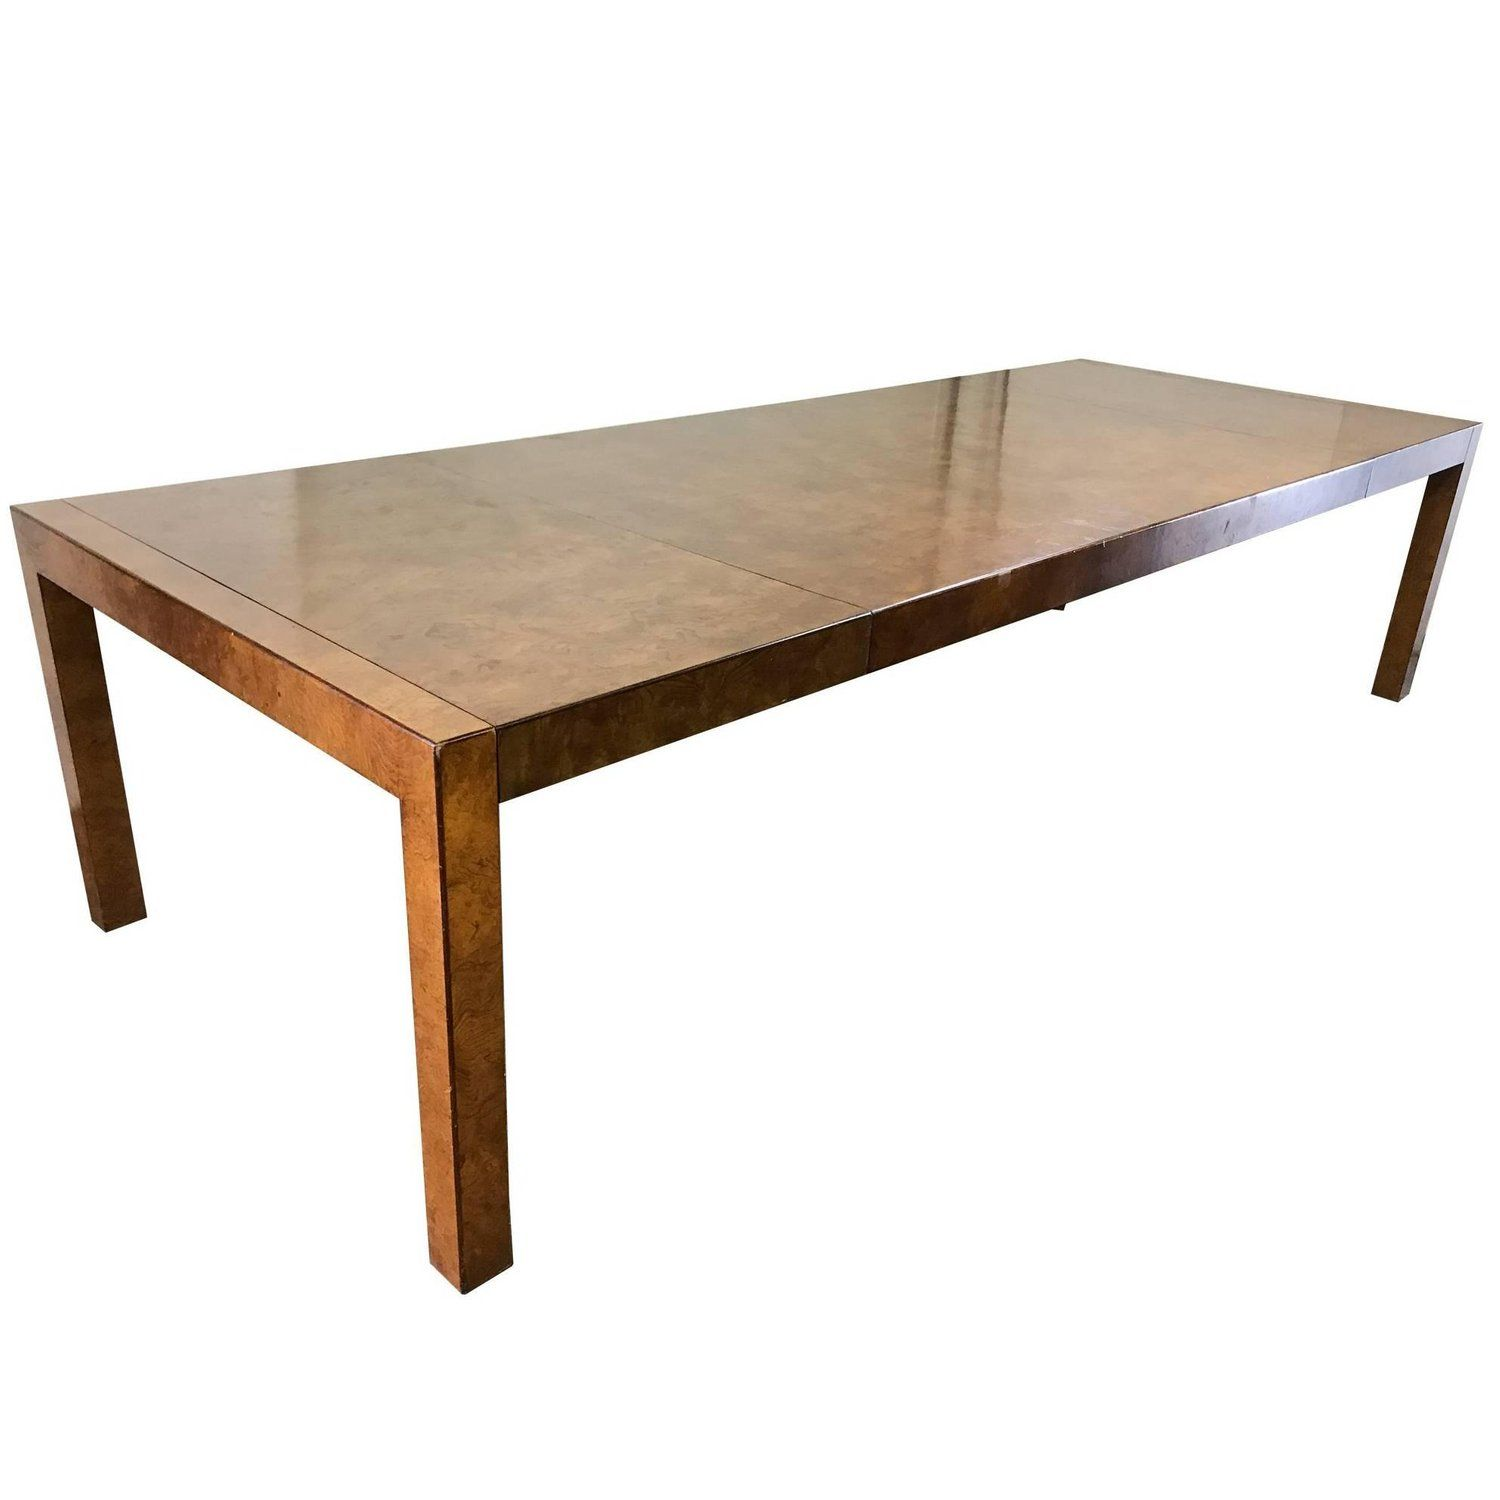 burl wood parsons style dining table by widdicomb bg galleries